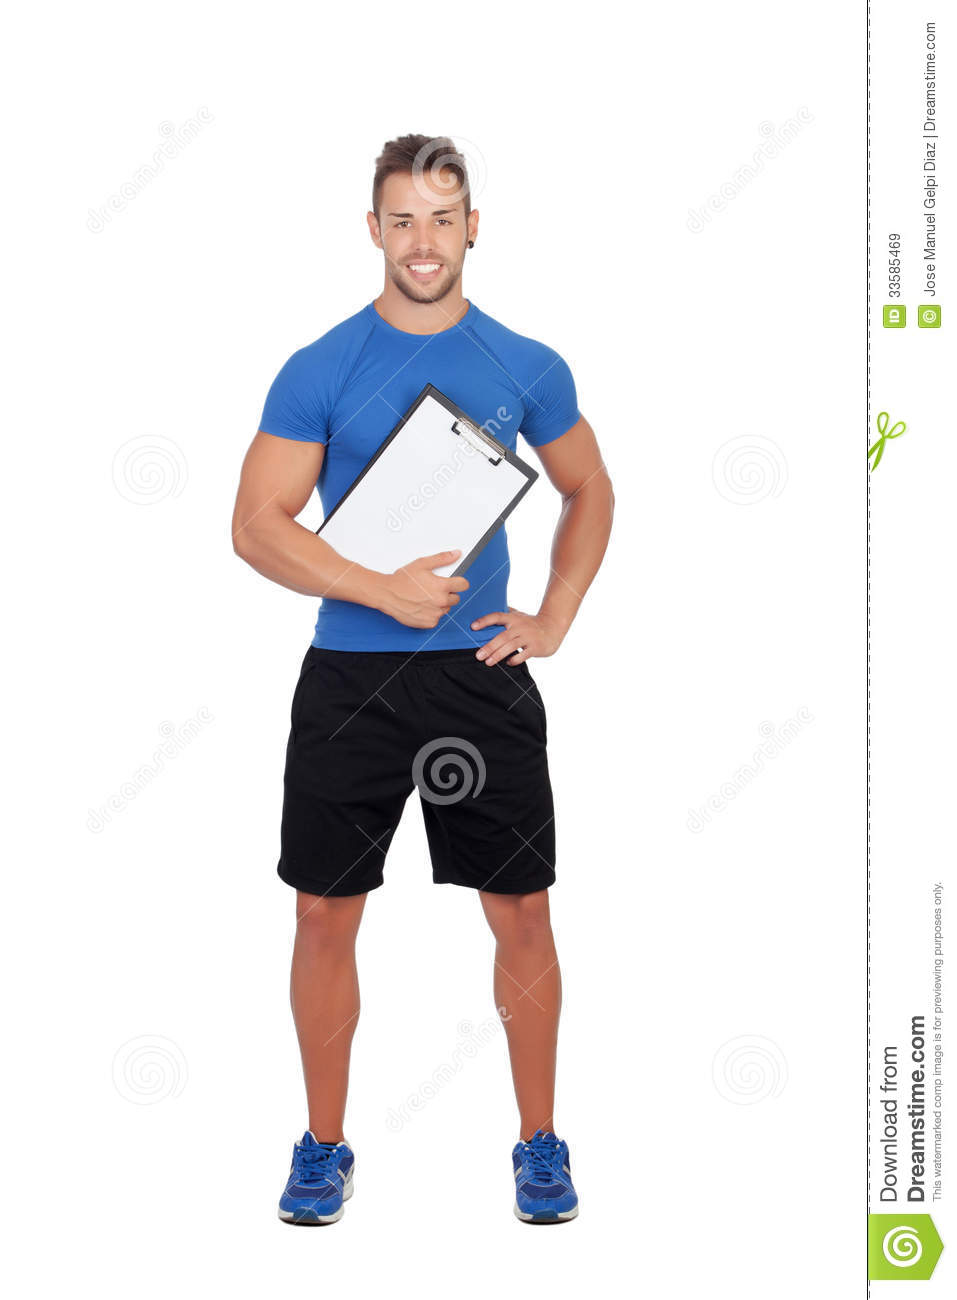 Handsome Personal Trainer With A Clipboard Stock Image ...